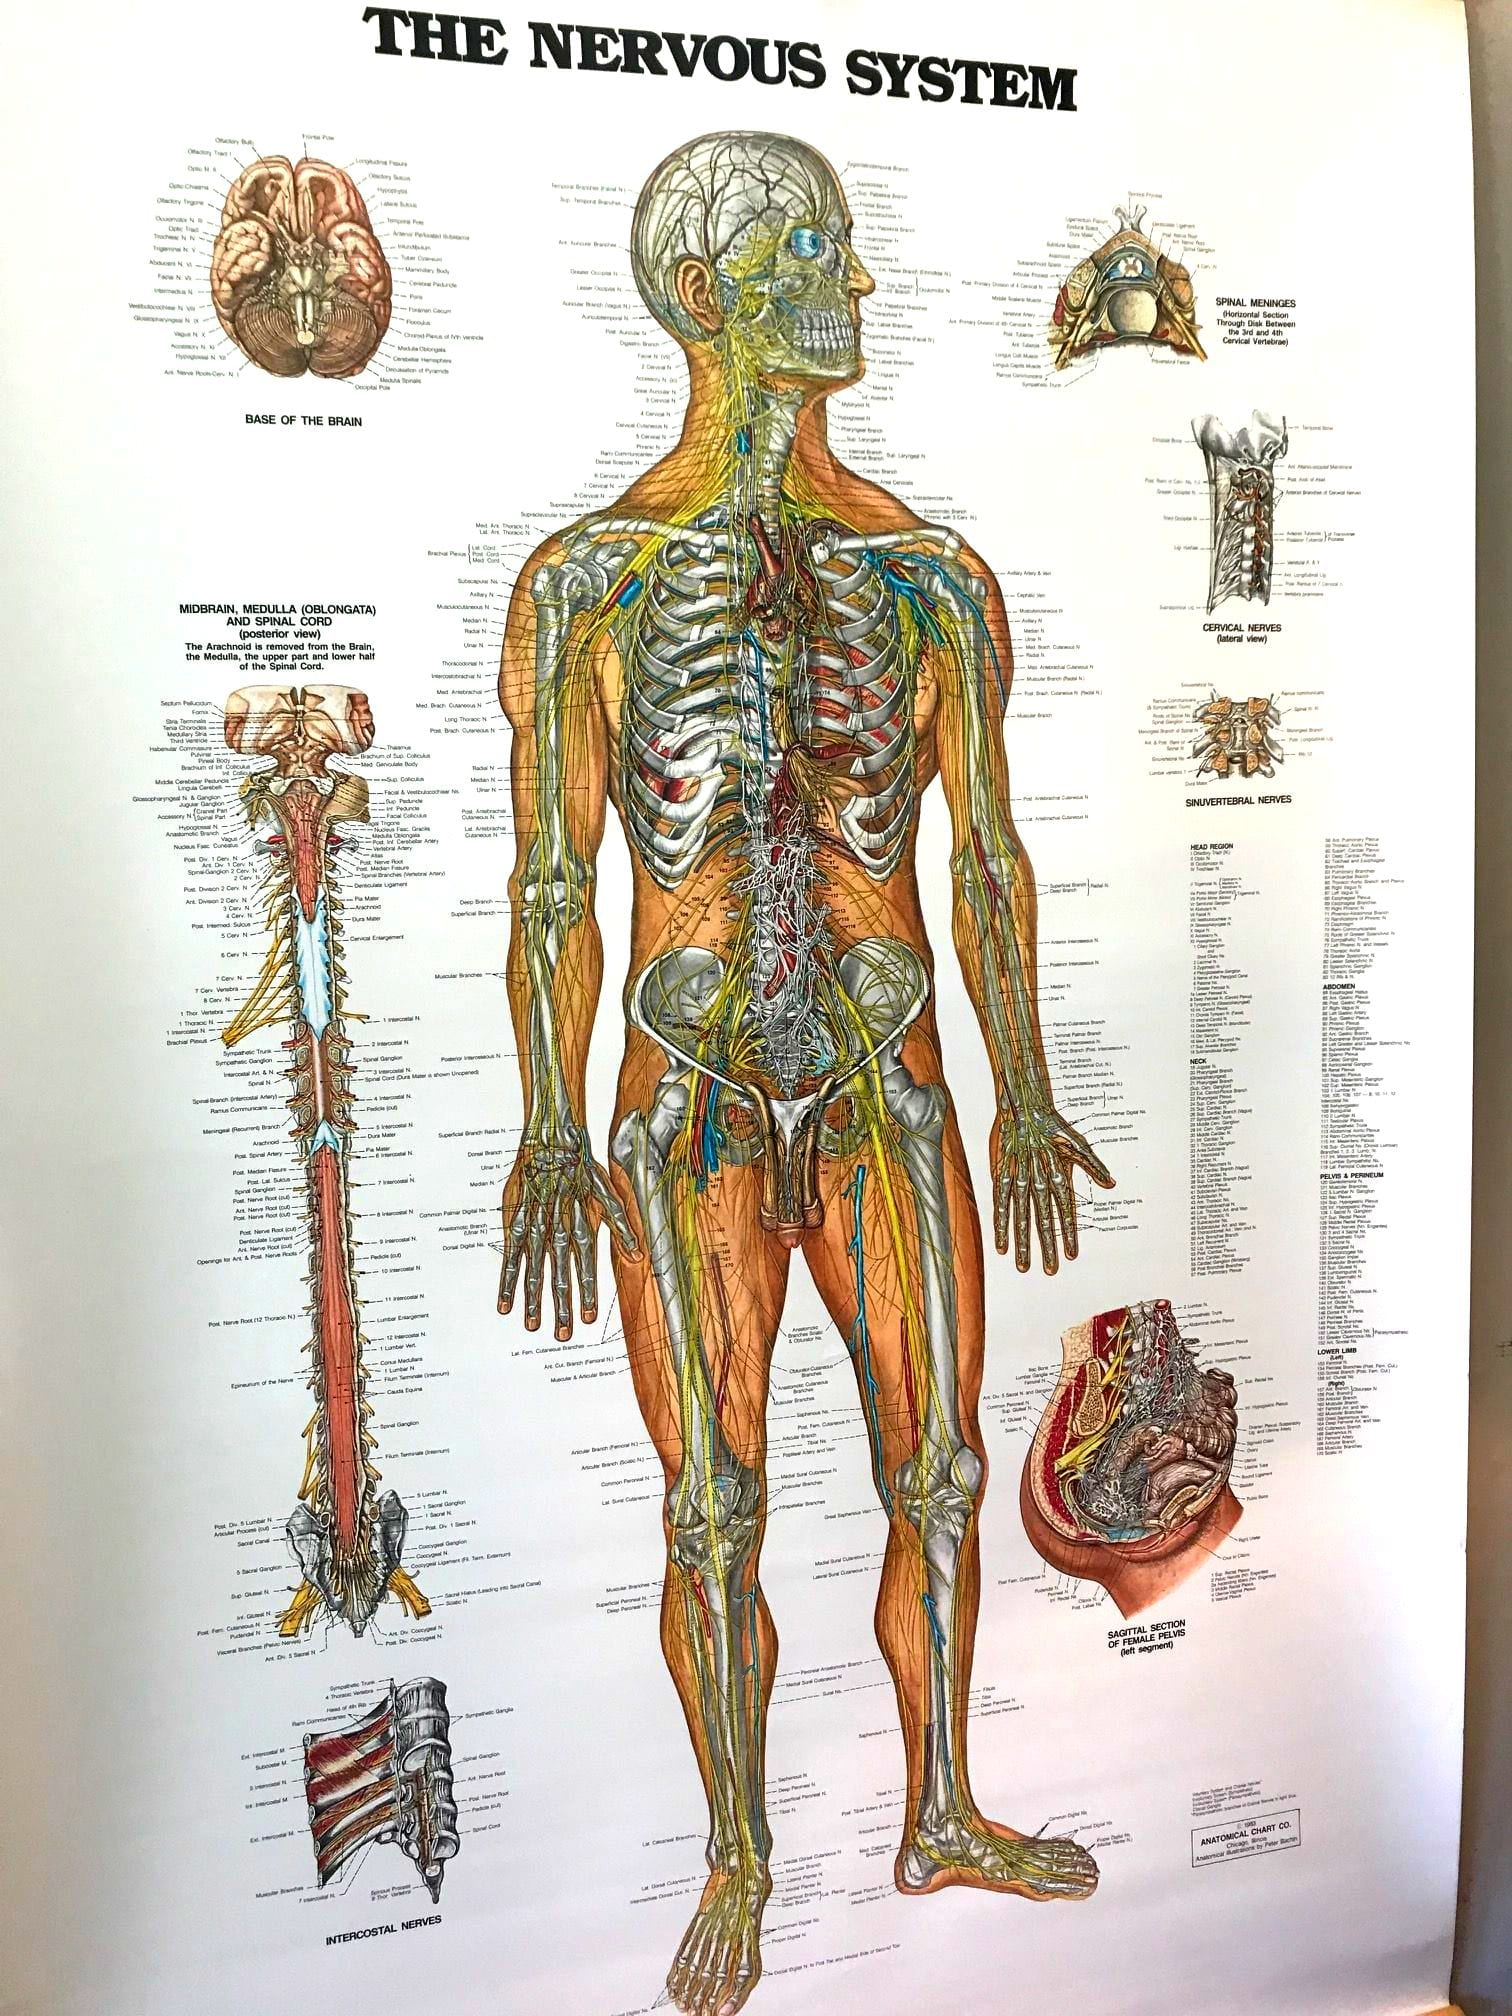 Share your vintage anatomy chart